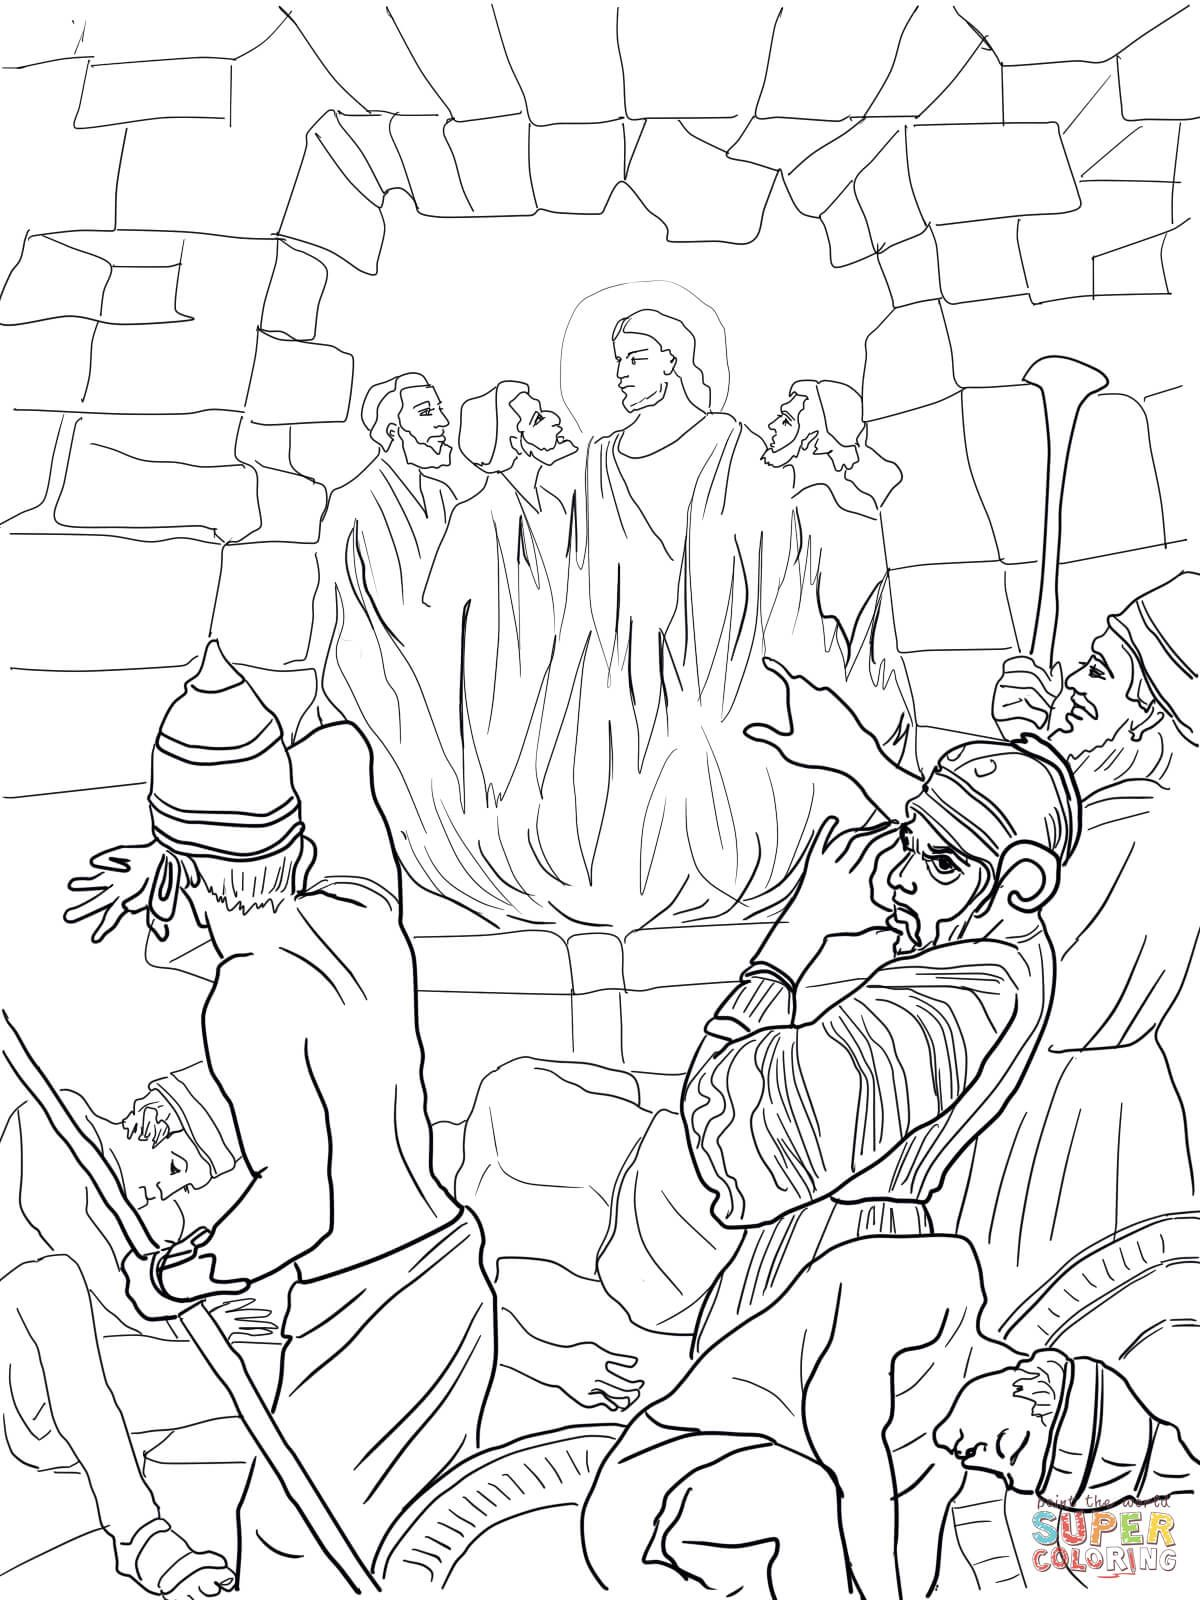 shadrach meshach and abednego in the fiery furnace super coloring